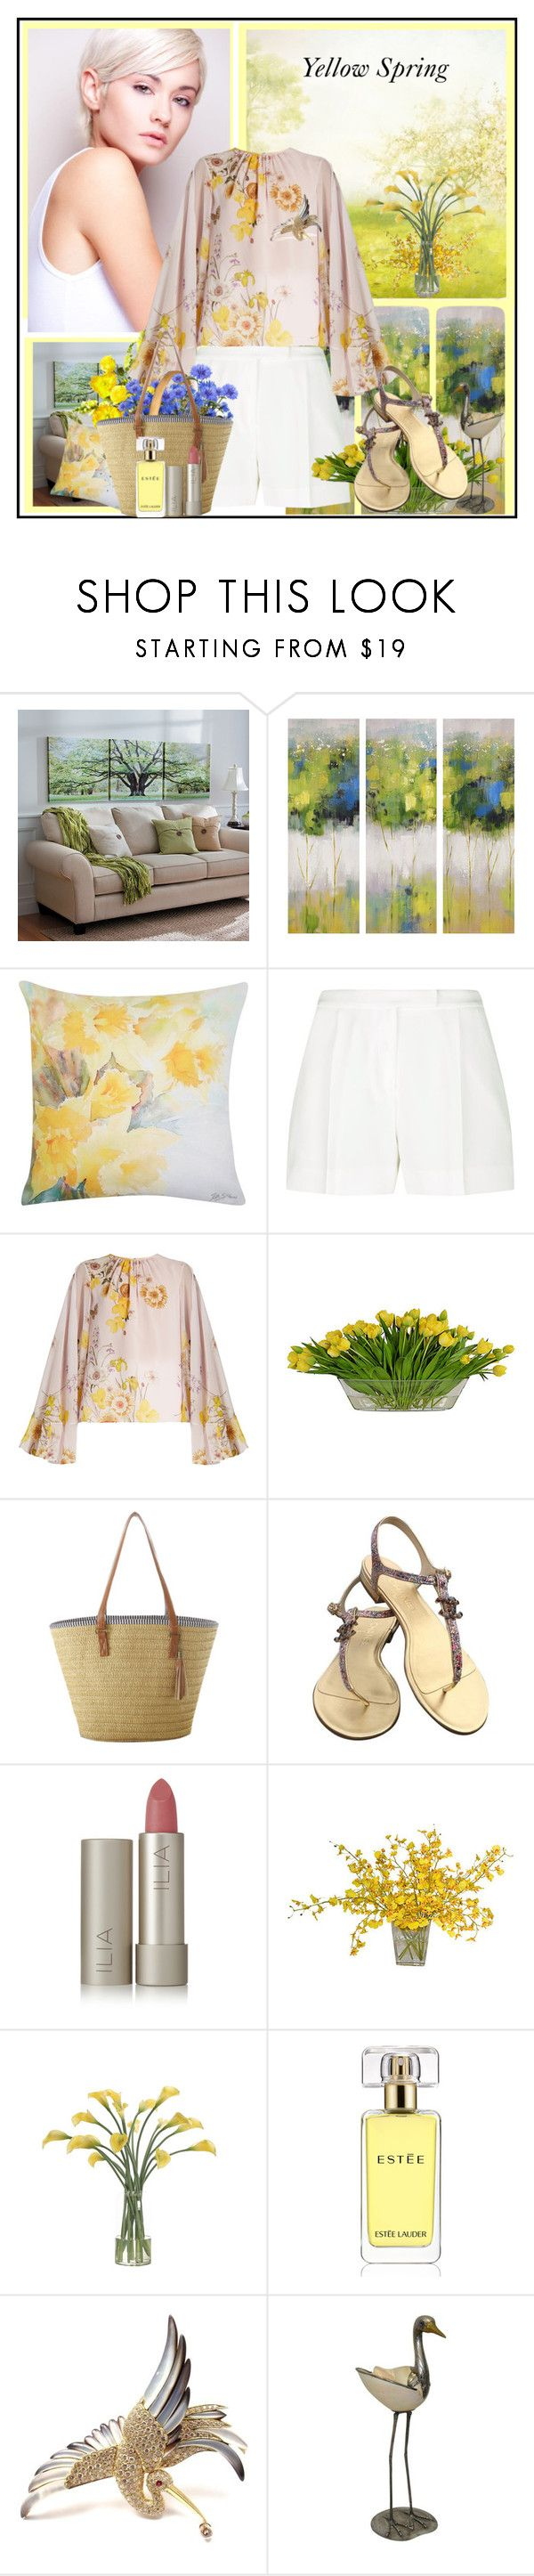 """Yellow Spring !"" by fantasy-rose ❤ liked on Polyvore featuring Improvements, M&Co, Elie Saab, Giambattista Valli, The French Bee, Chanel, Ilia, NDI, Estée Lauder and floralprint"